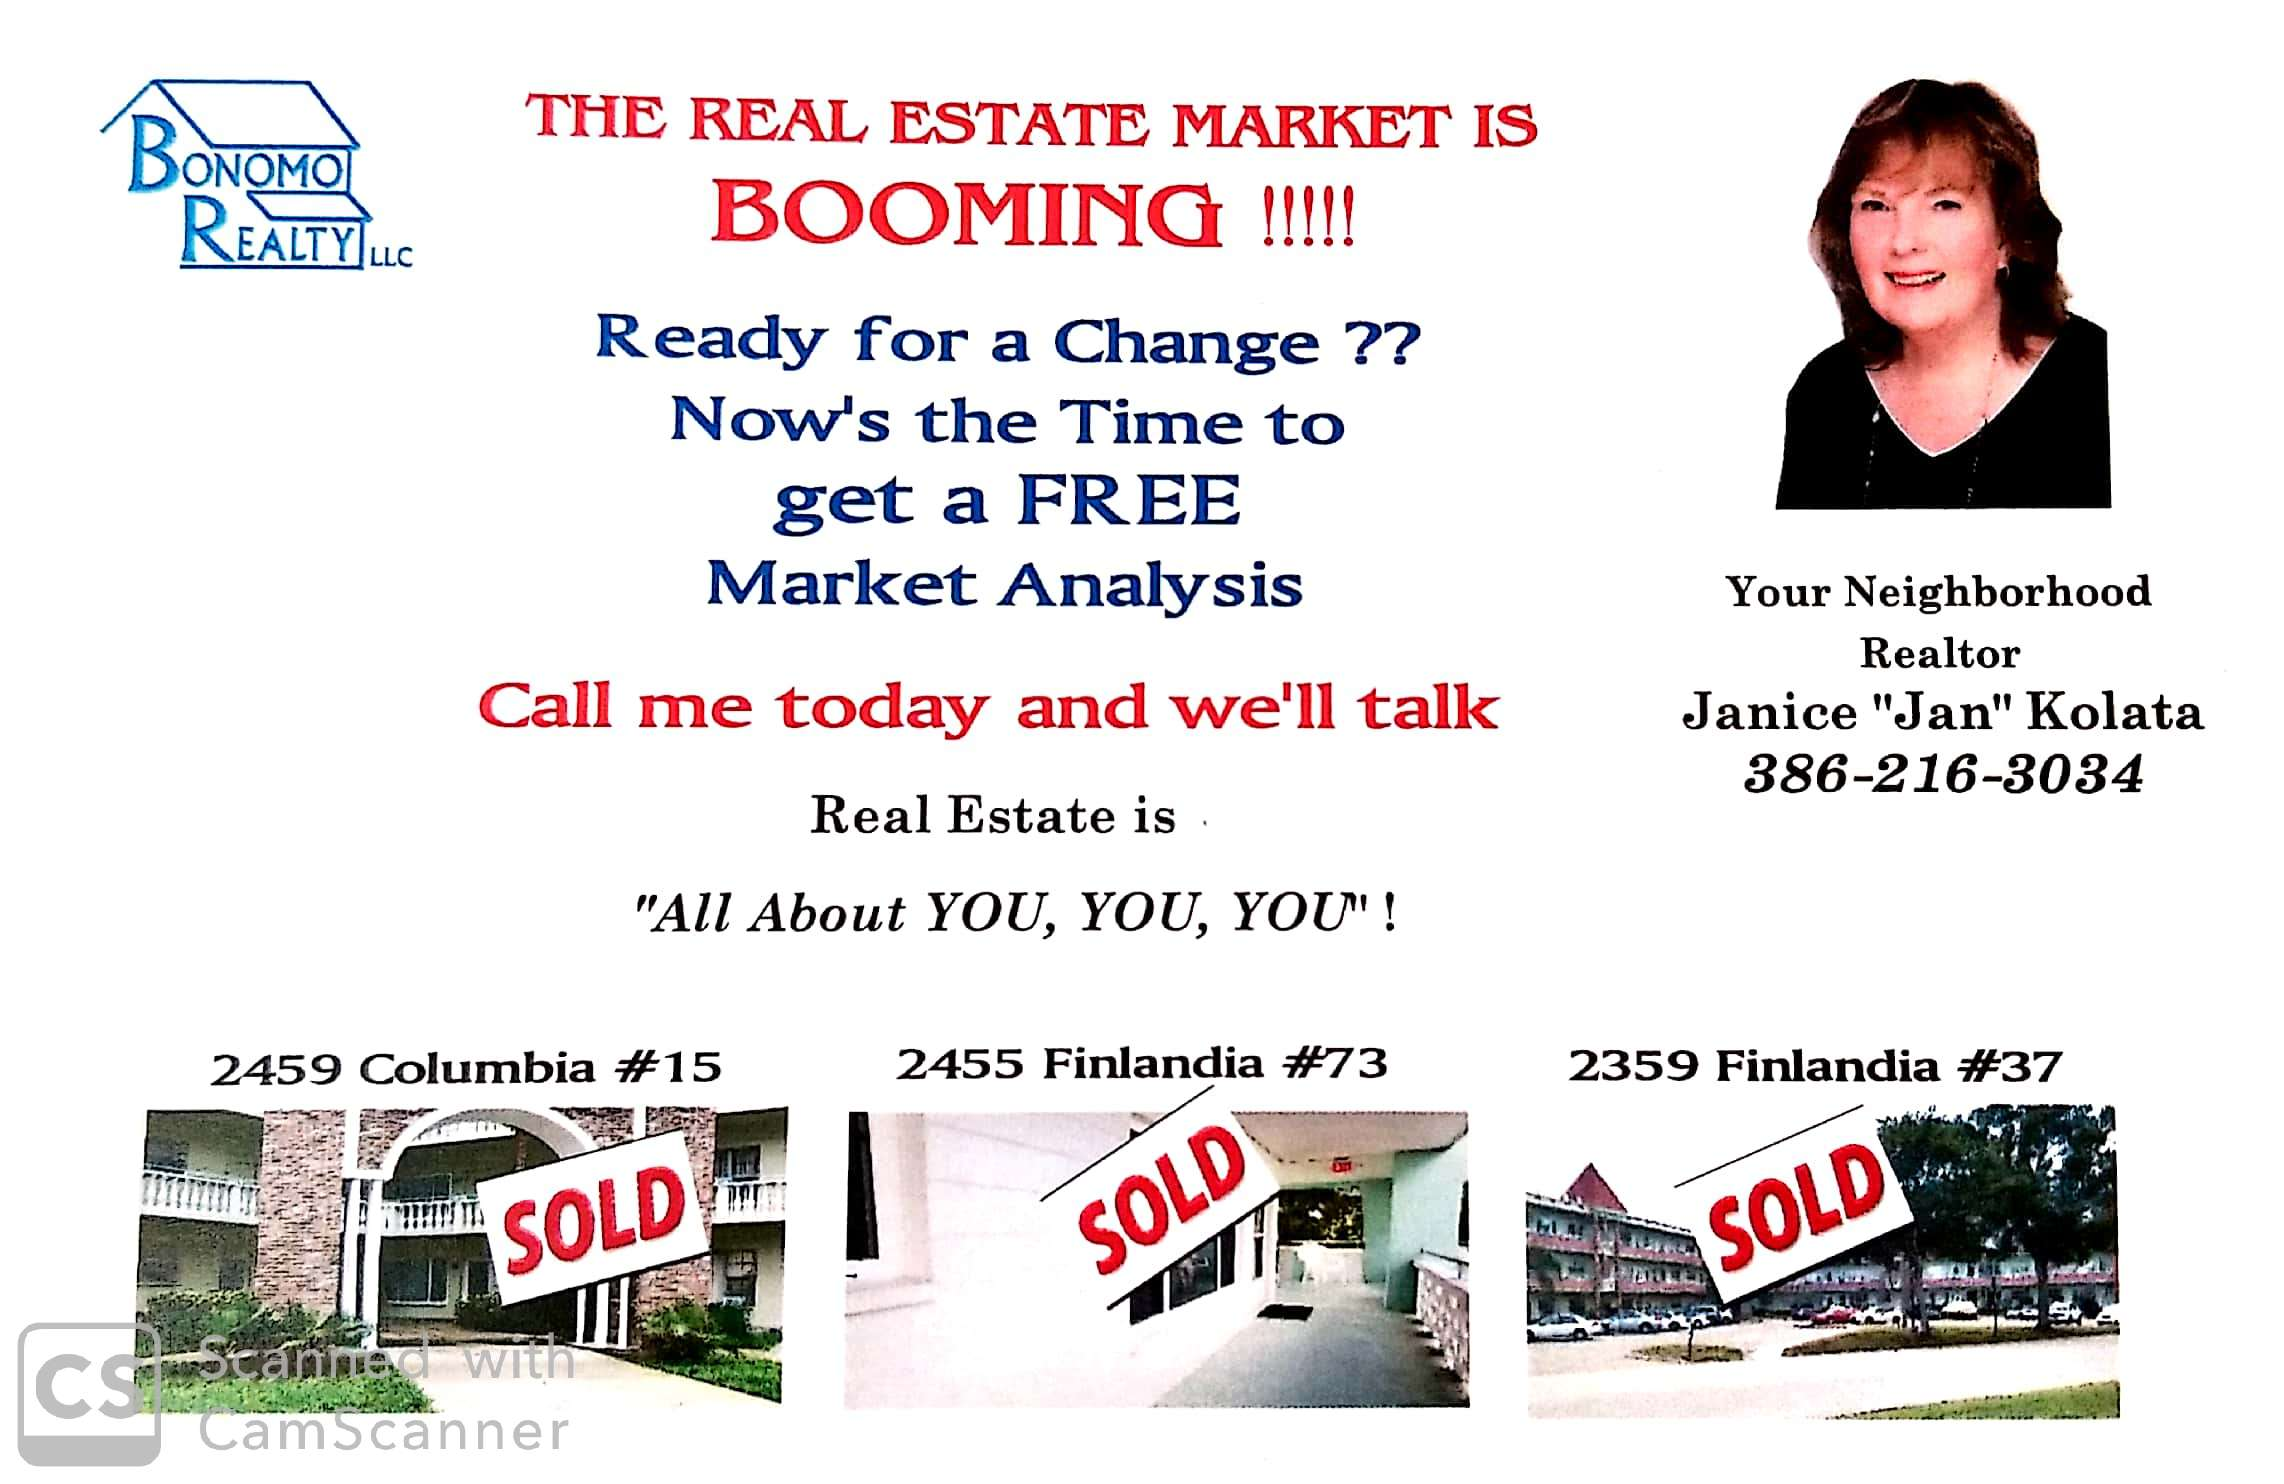 The Real Estate Market is Booming